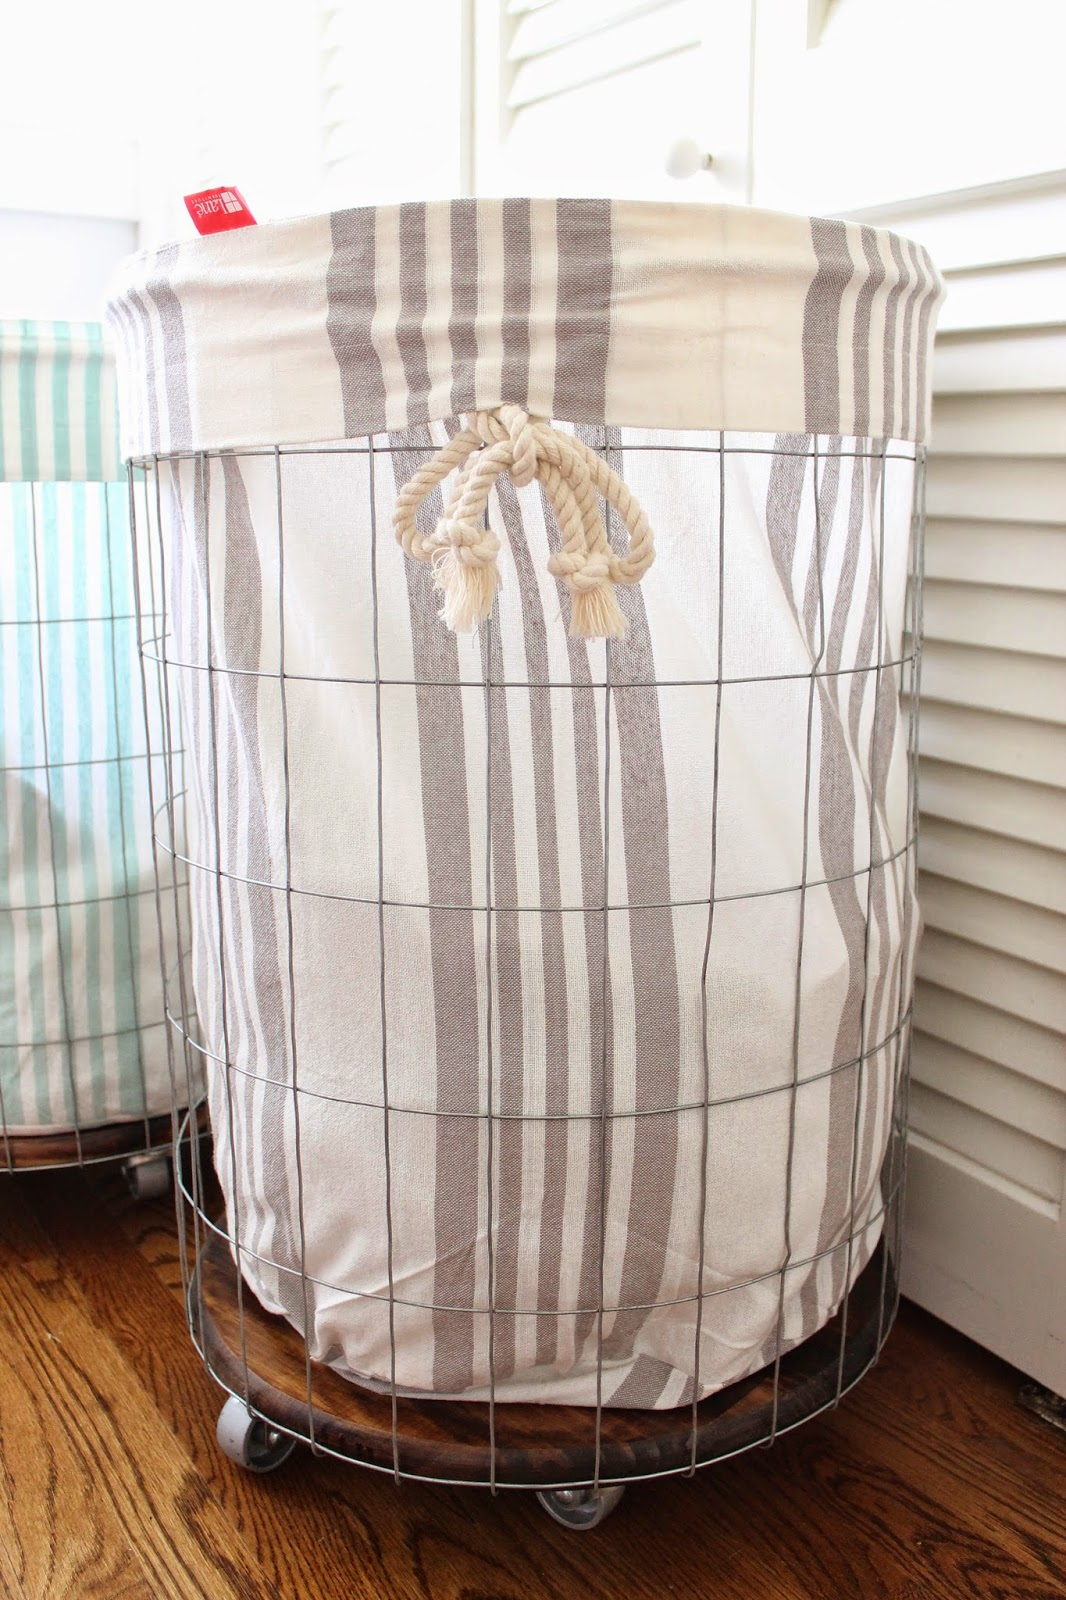 Wire Laundry Hamper On Wheels The Picket Fence Projects Airing Our Dirty Laundry And